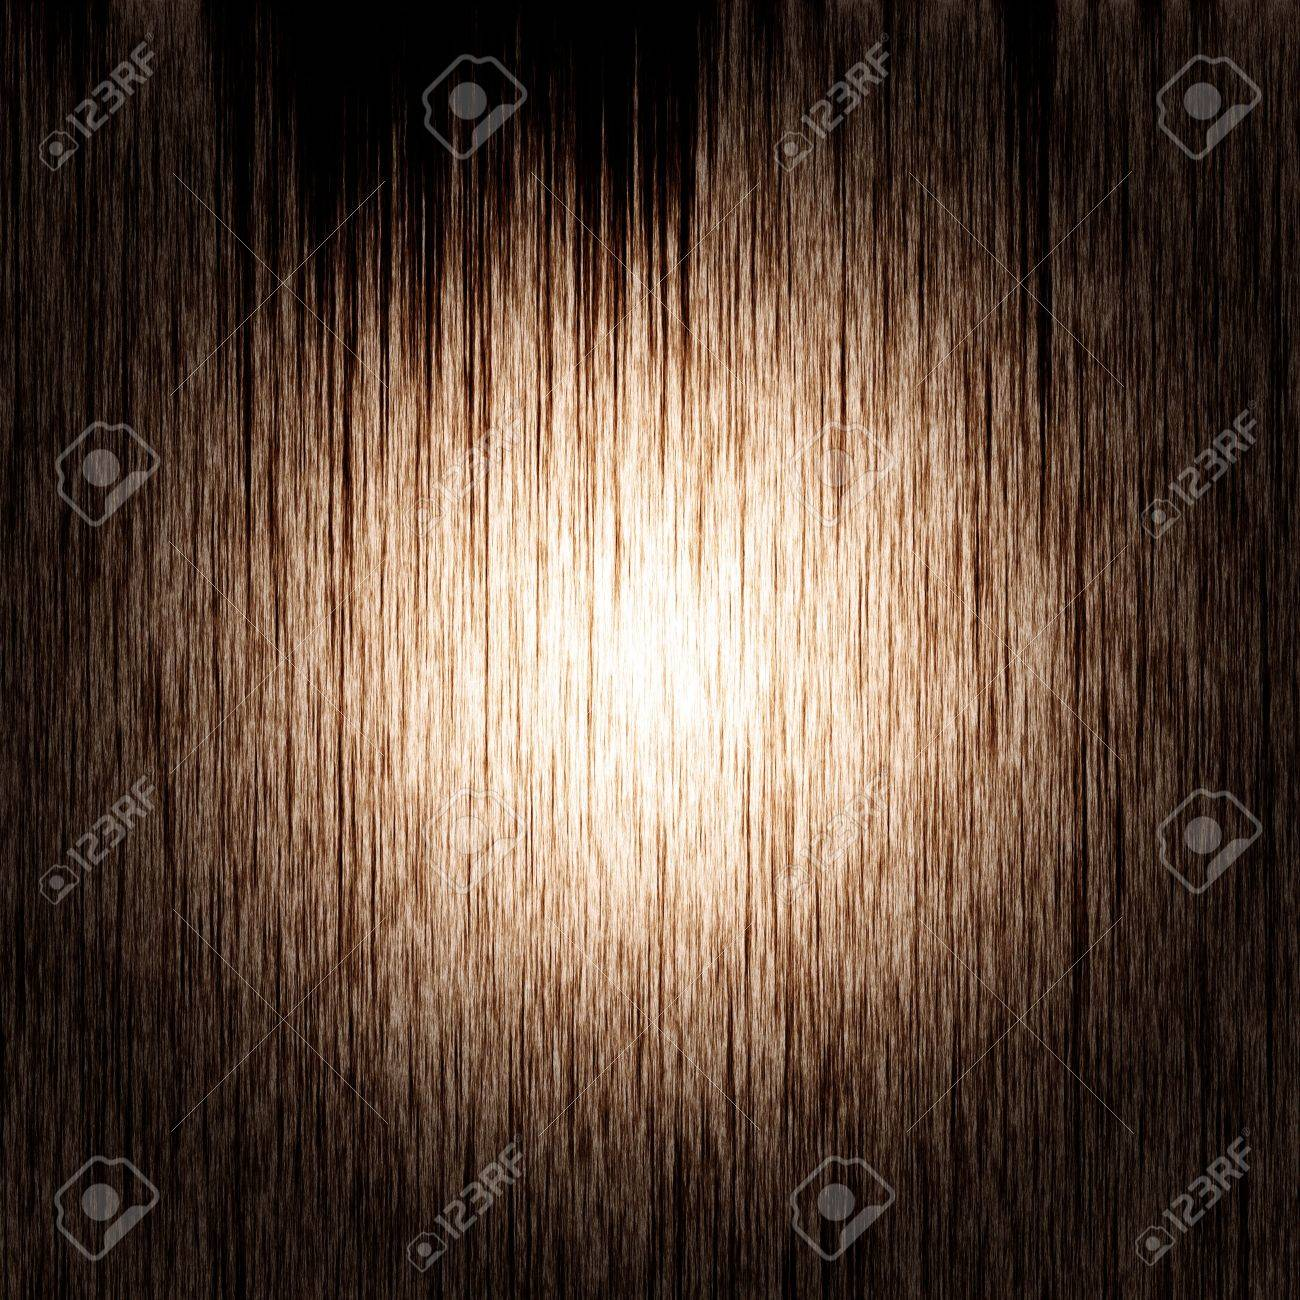 Grunge dark background with light spot in the center Stock Photo - 6126273